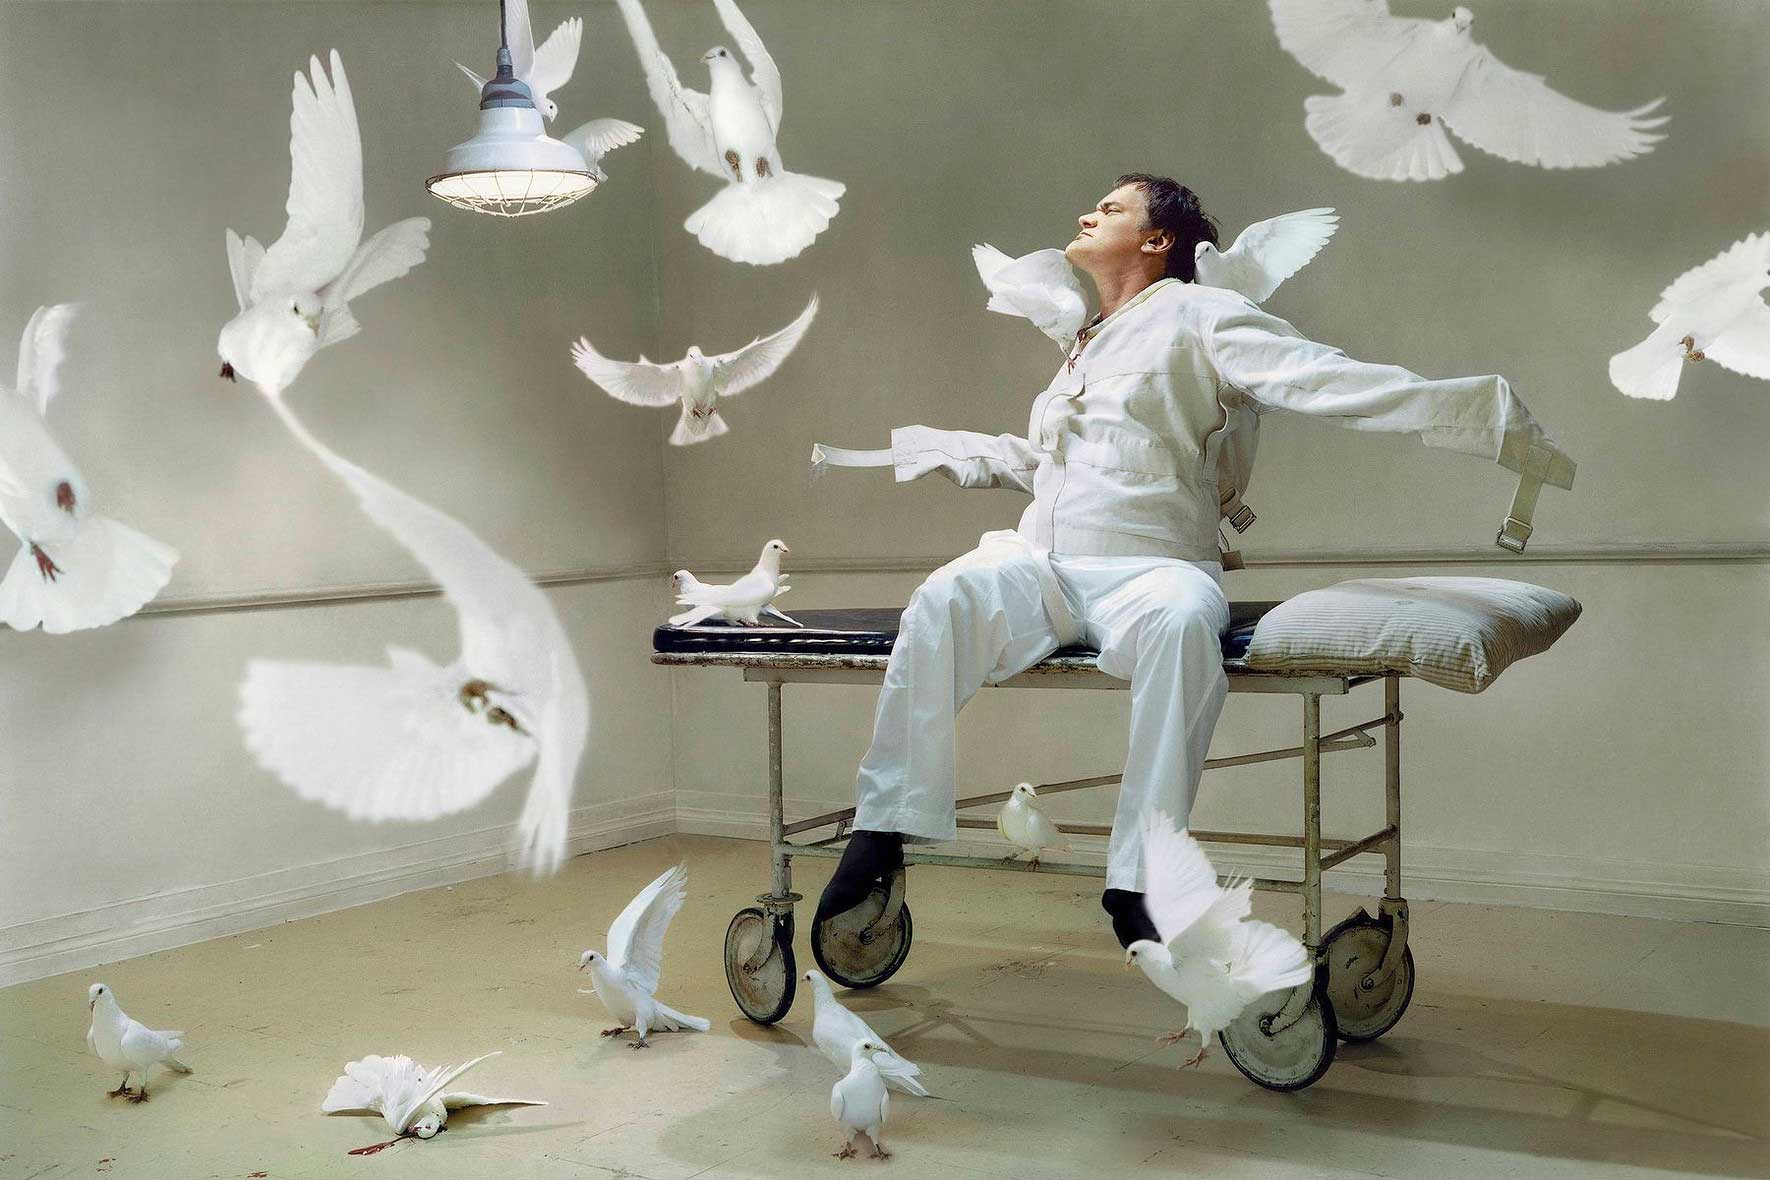 Quentin Tarantino.                                                               This was during the days of Kill Bill. I thought of a shoot with white doves. Sort of him being the victim of these white doves -- a [symbolic] mixture of One Flew Over the Cuckoos Nest, and the symbol of peace. We had the doves and the gurney and it took a while to talk him into it. There were dove wranglers and [the doves] would fly around and come back. Not all the doves are in this frame, though. There is one dead one which makes the whole thing slightly more sinister.